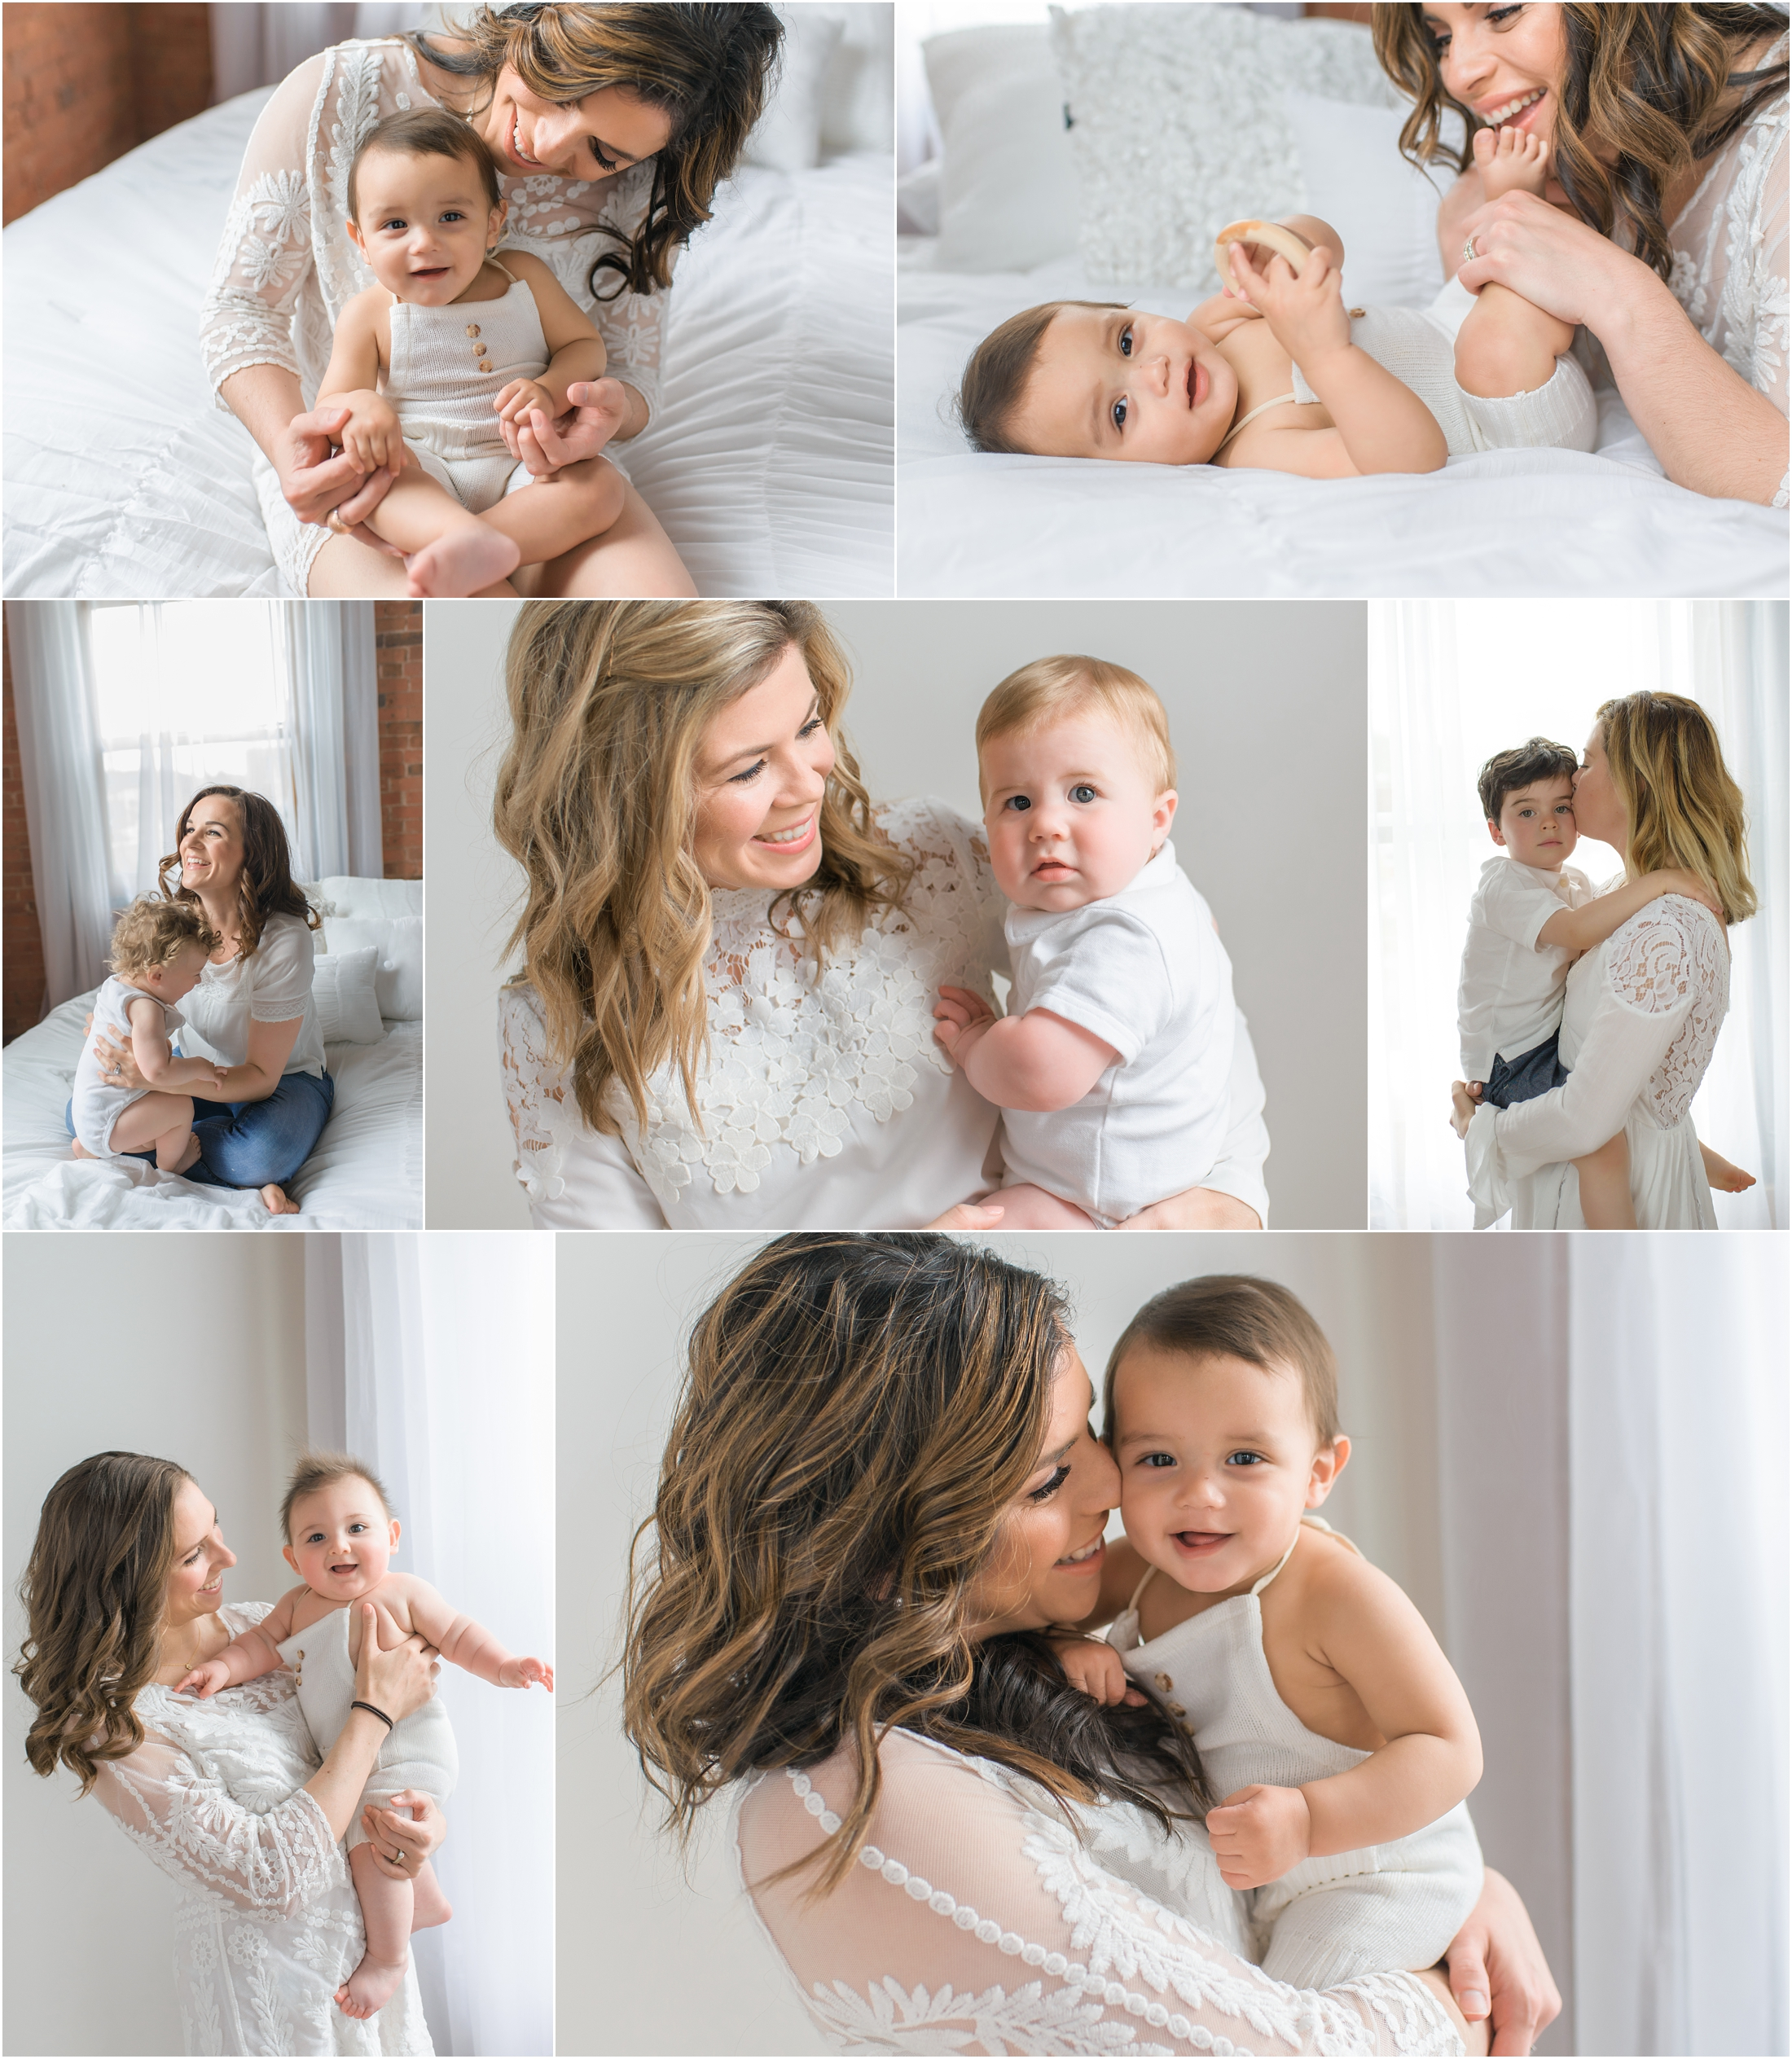 Motherhood photo sessions in West Hartford, Simsbury, Canton, Avon and Farmington Valley CT.